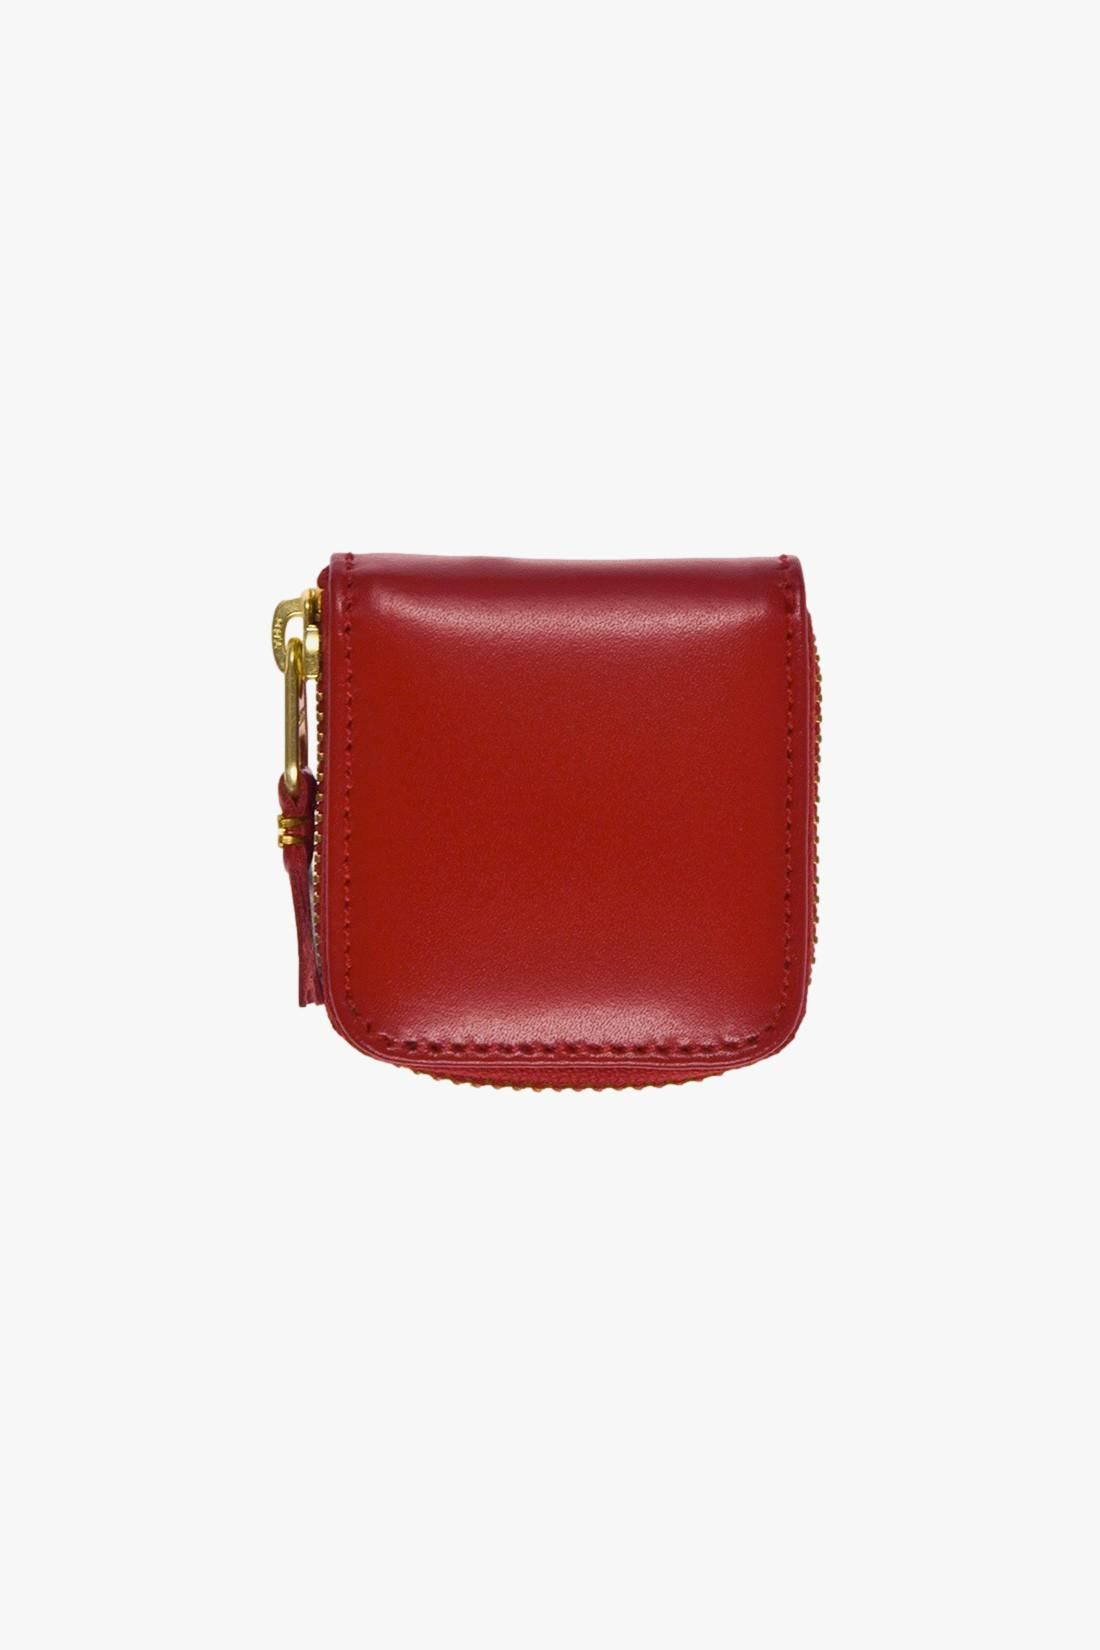 COMME DES GARÇONS WALLETS / Cdg leather wallet classic Red